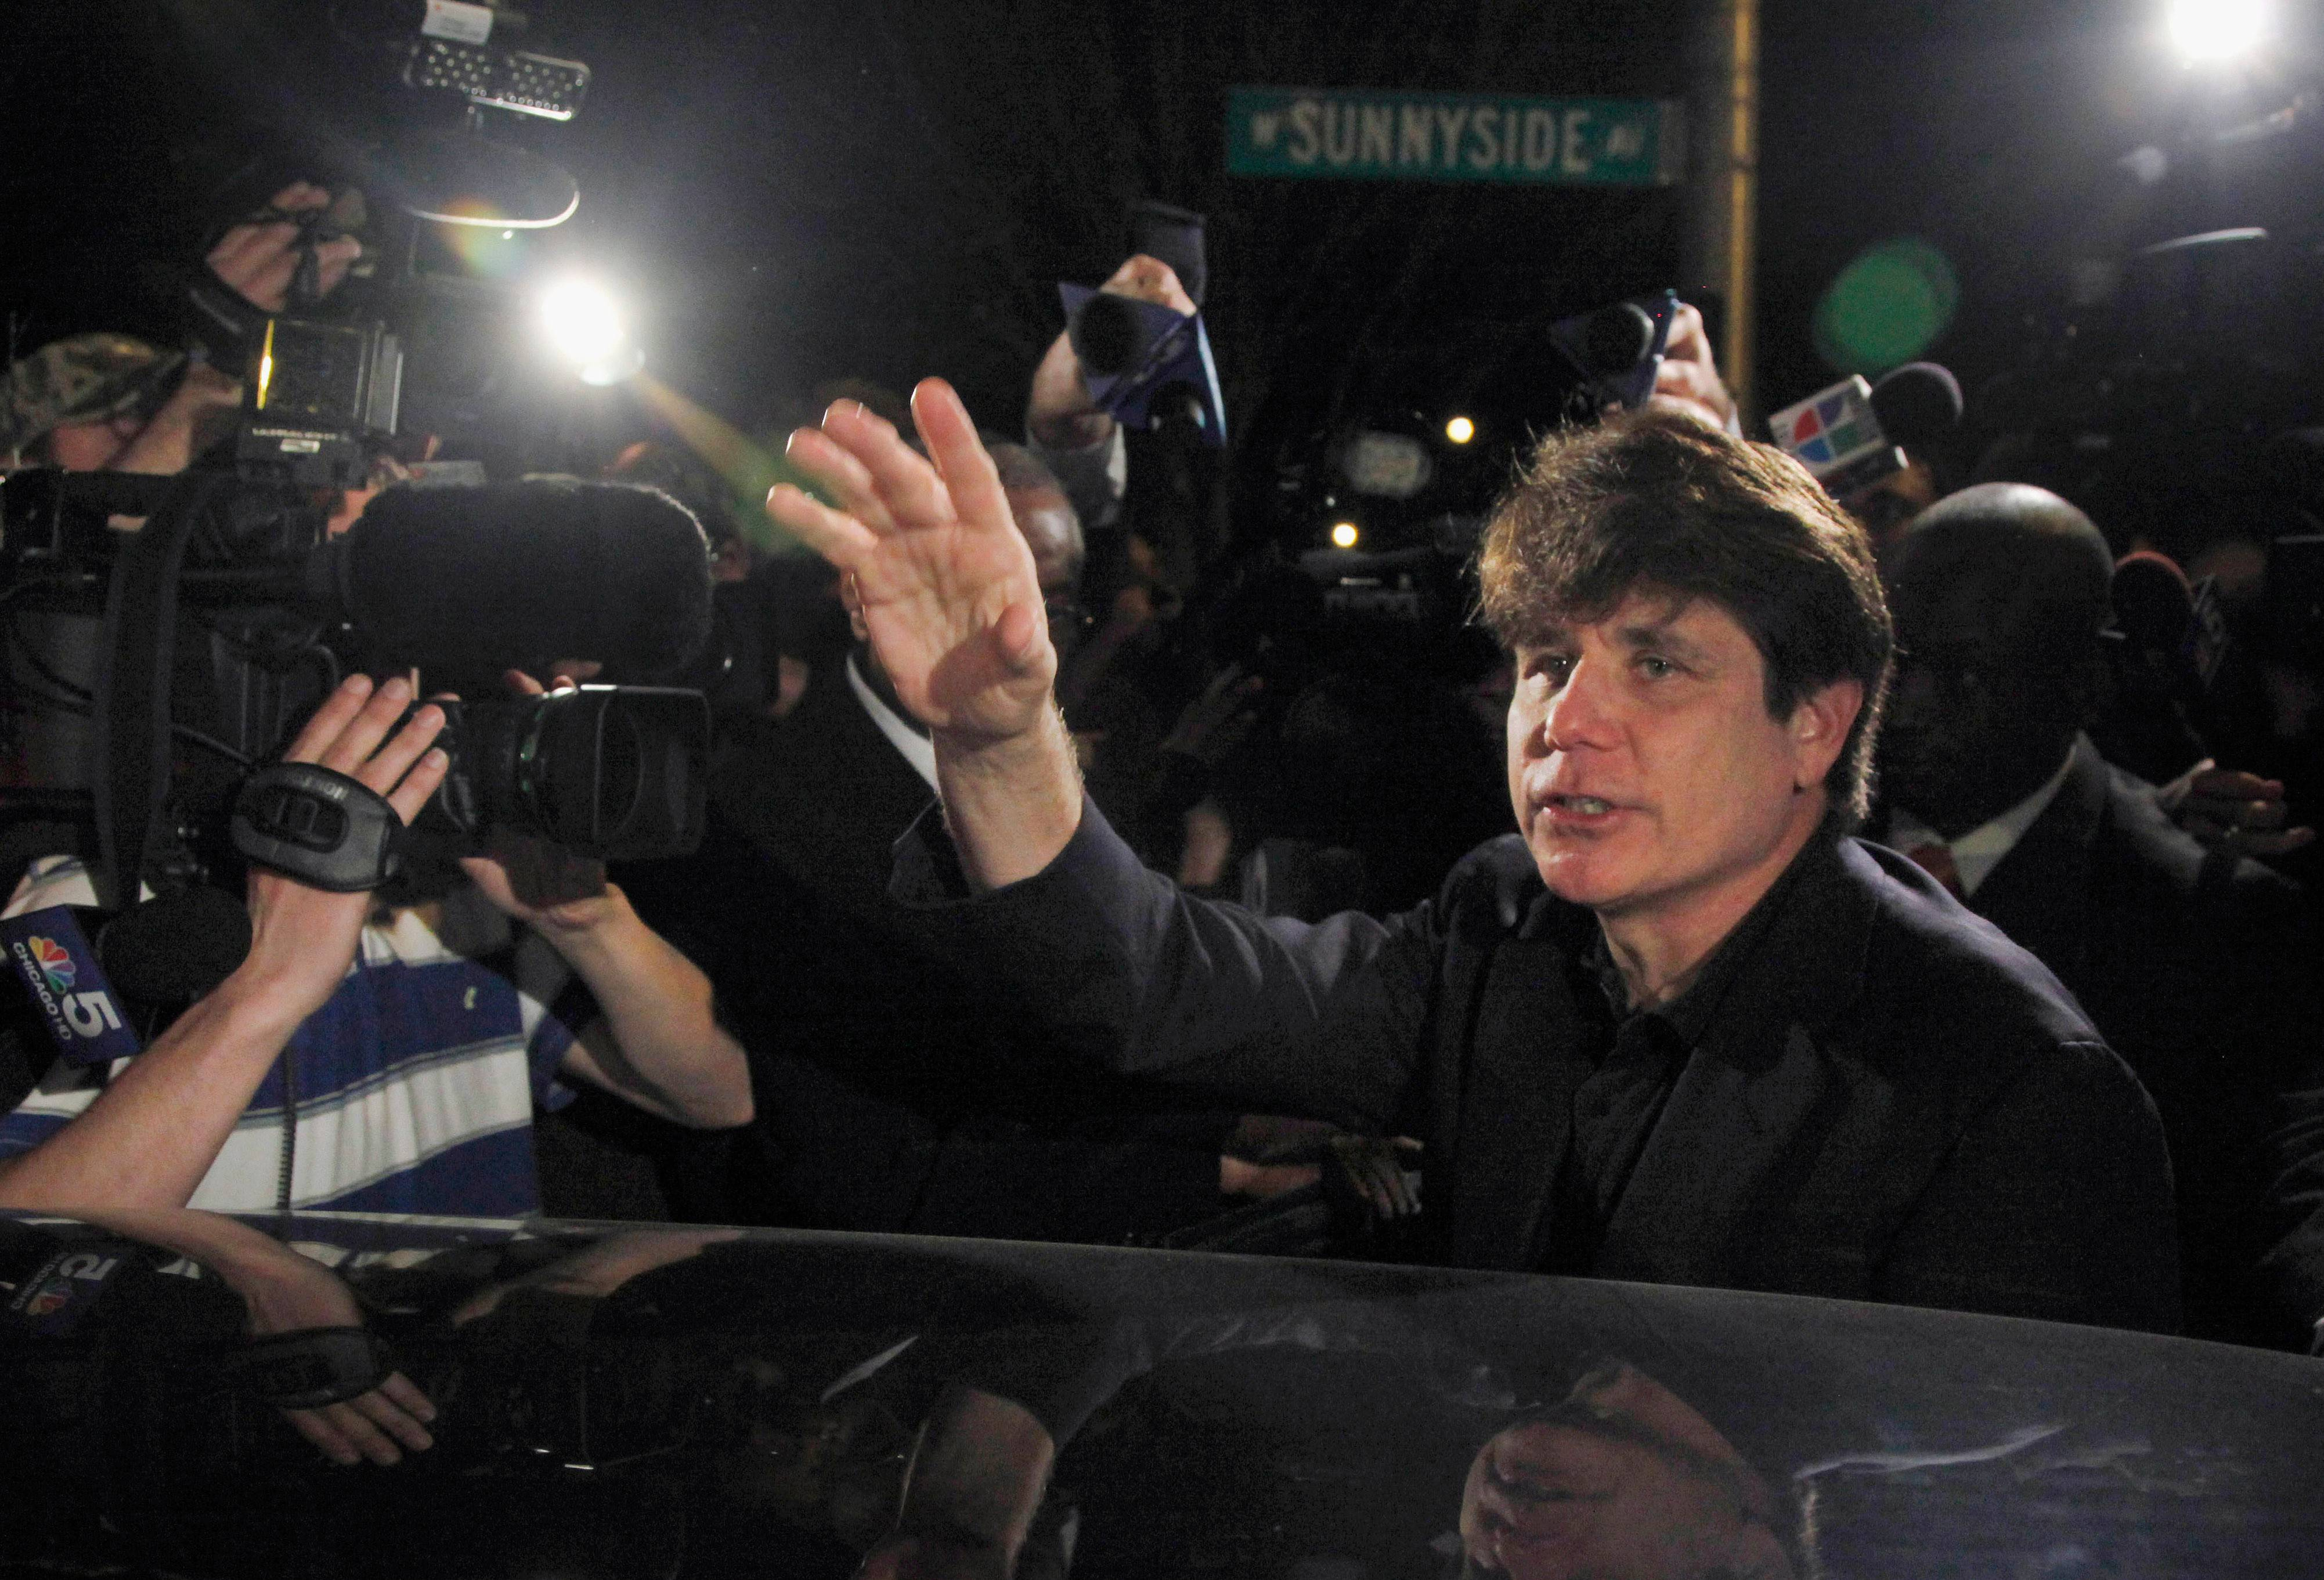 Former Illinois Gov. Rod Blagojevich departs his Chicago home for Littleton, Colorado, in March 2012 to begin his 14-year prison sentence on corruption charges.